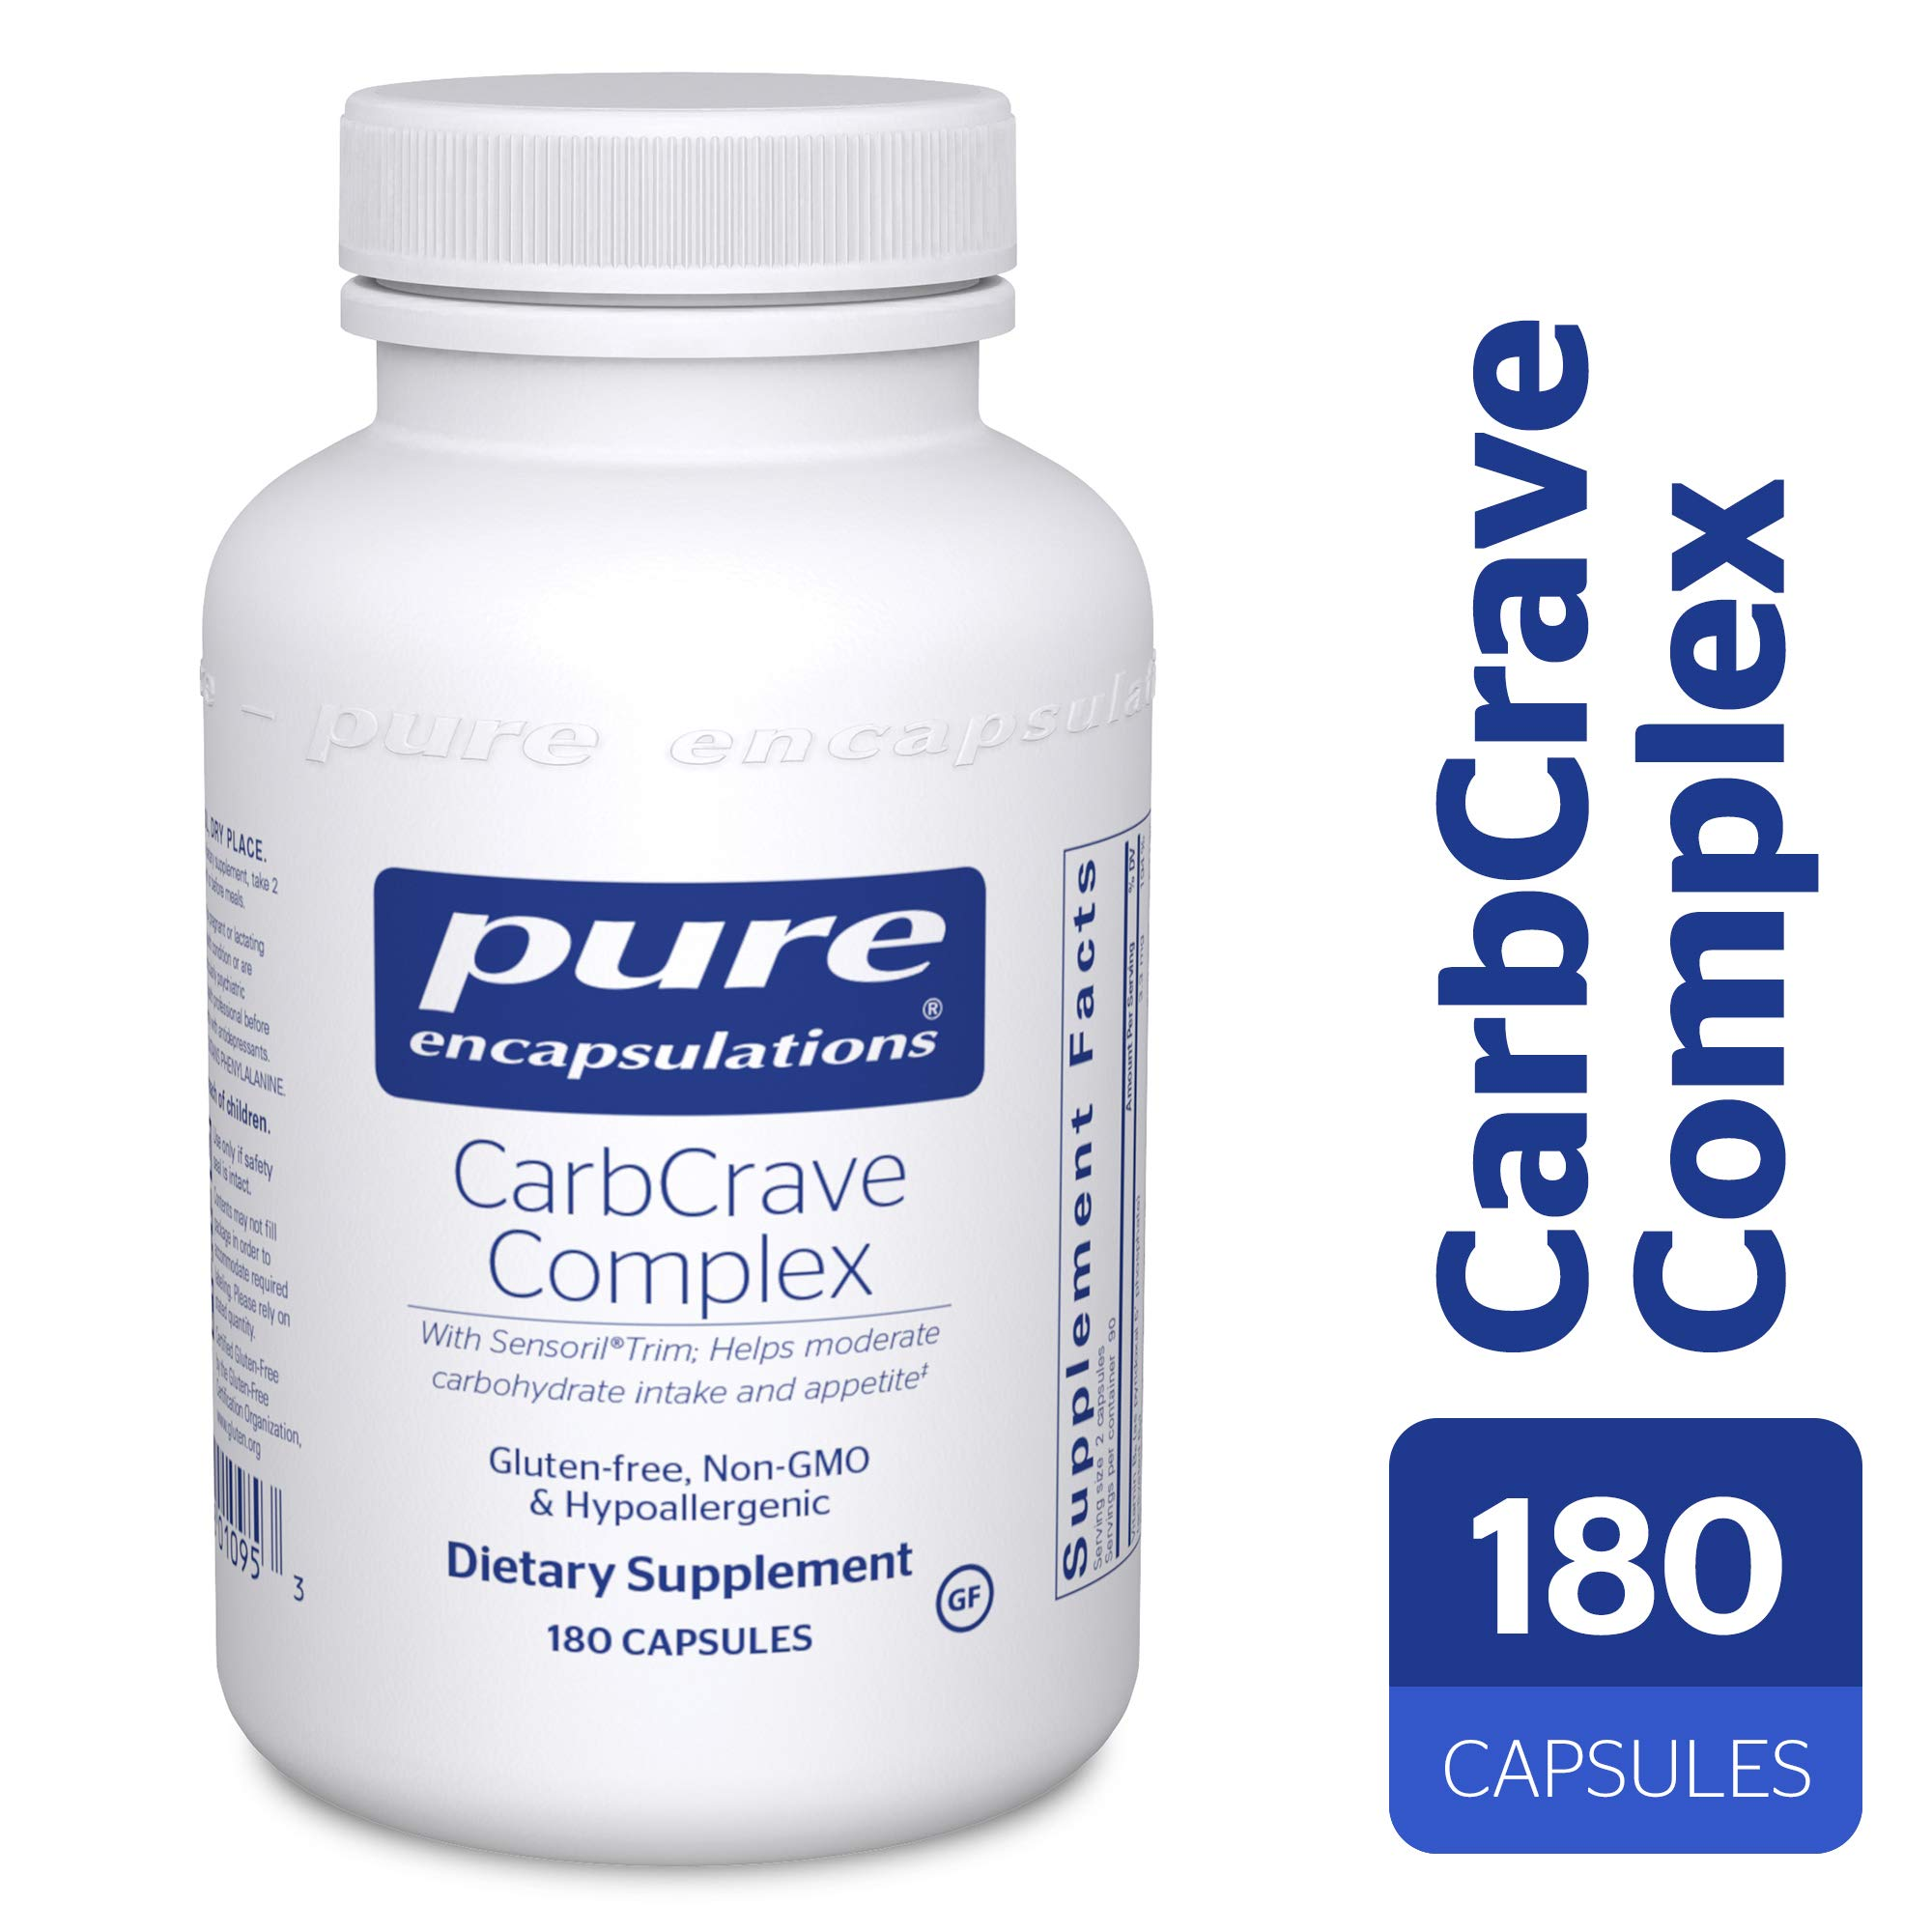 Pure Encapsulations - CarbCrave Complex - with Sensoril Trim to Help Moderate Carbohydrate Intake and Lessen Appetite* - 180 Capsules